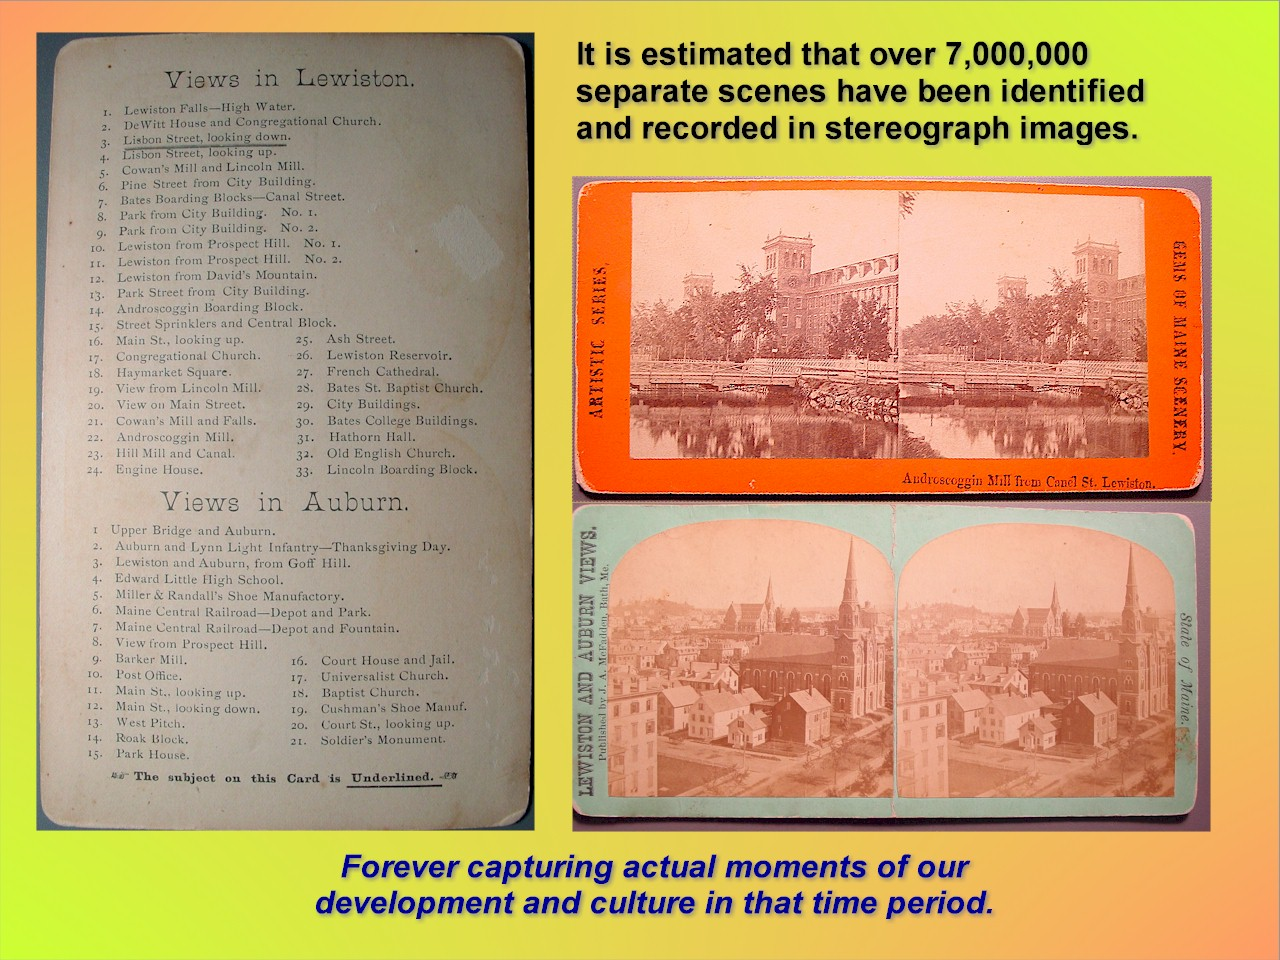 000c-Stereoview Cards